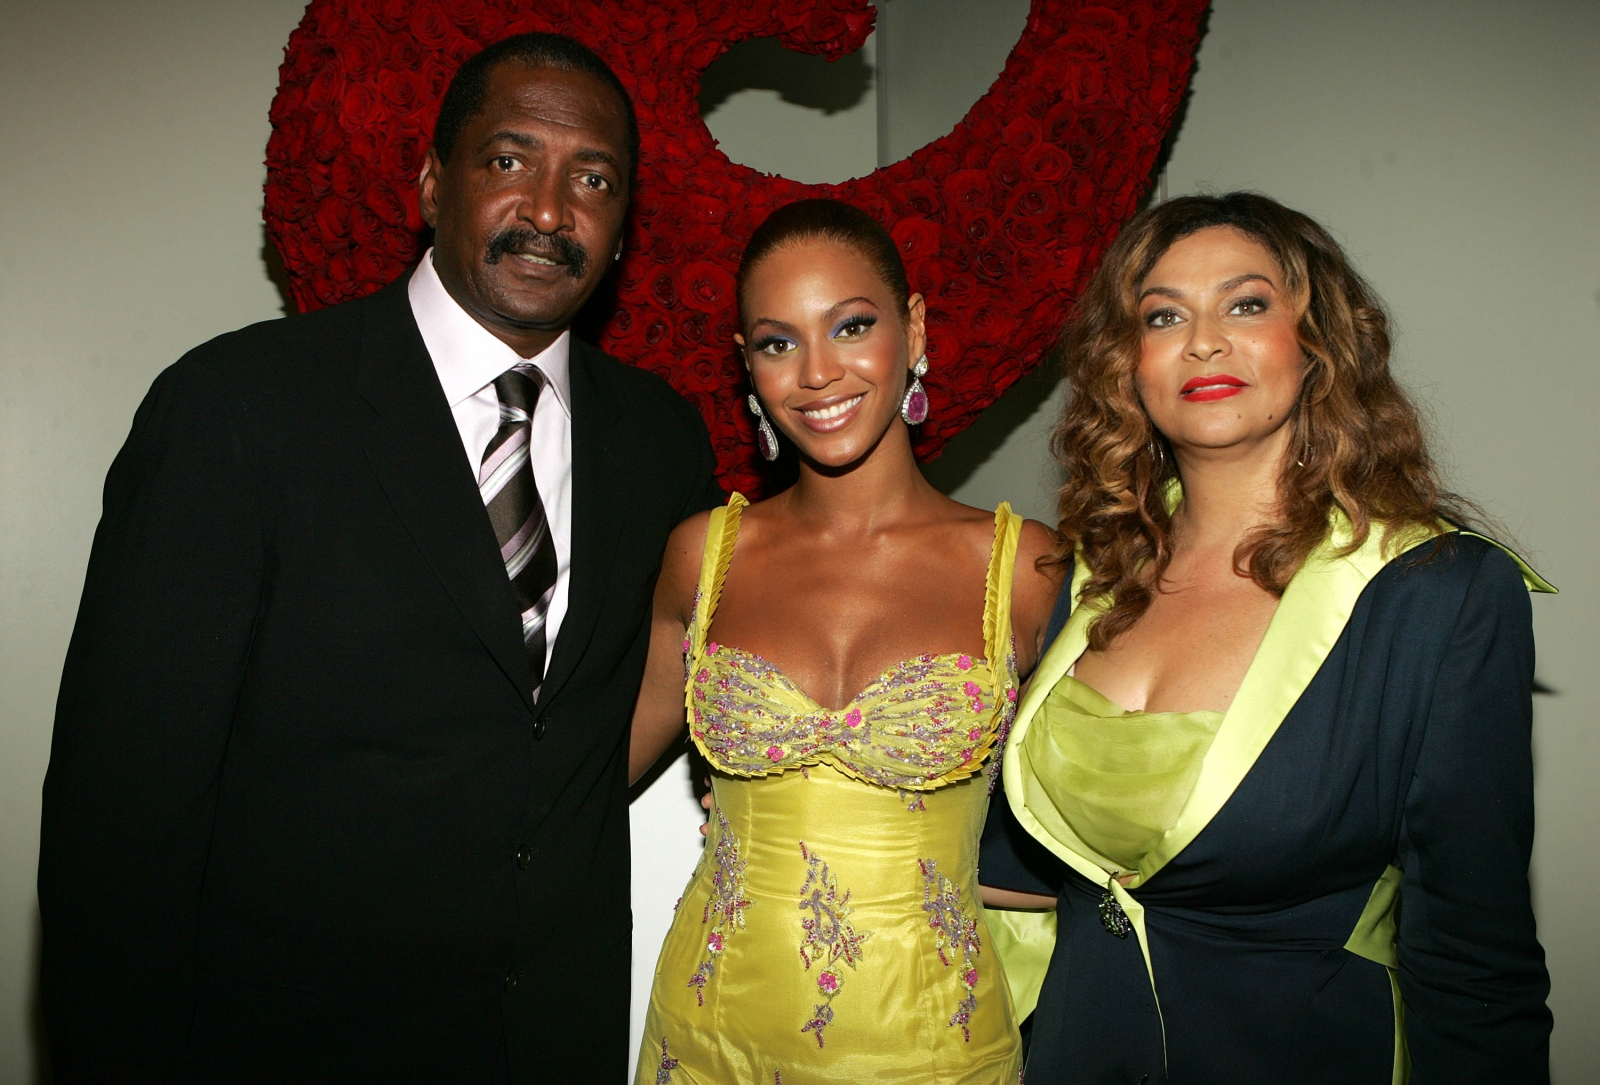 'Beyonce Knowles' Father Credits Her Success to Light Complexion